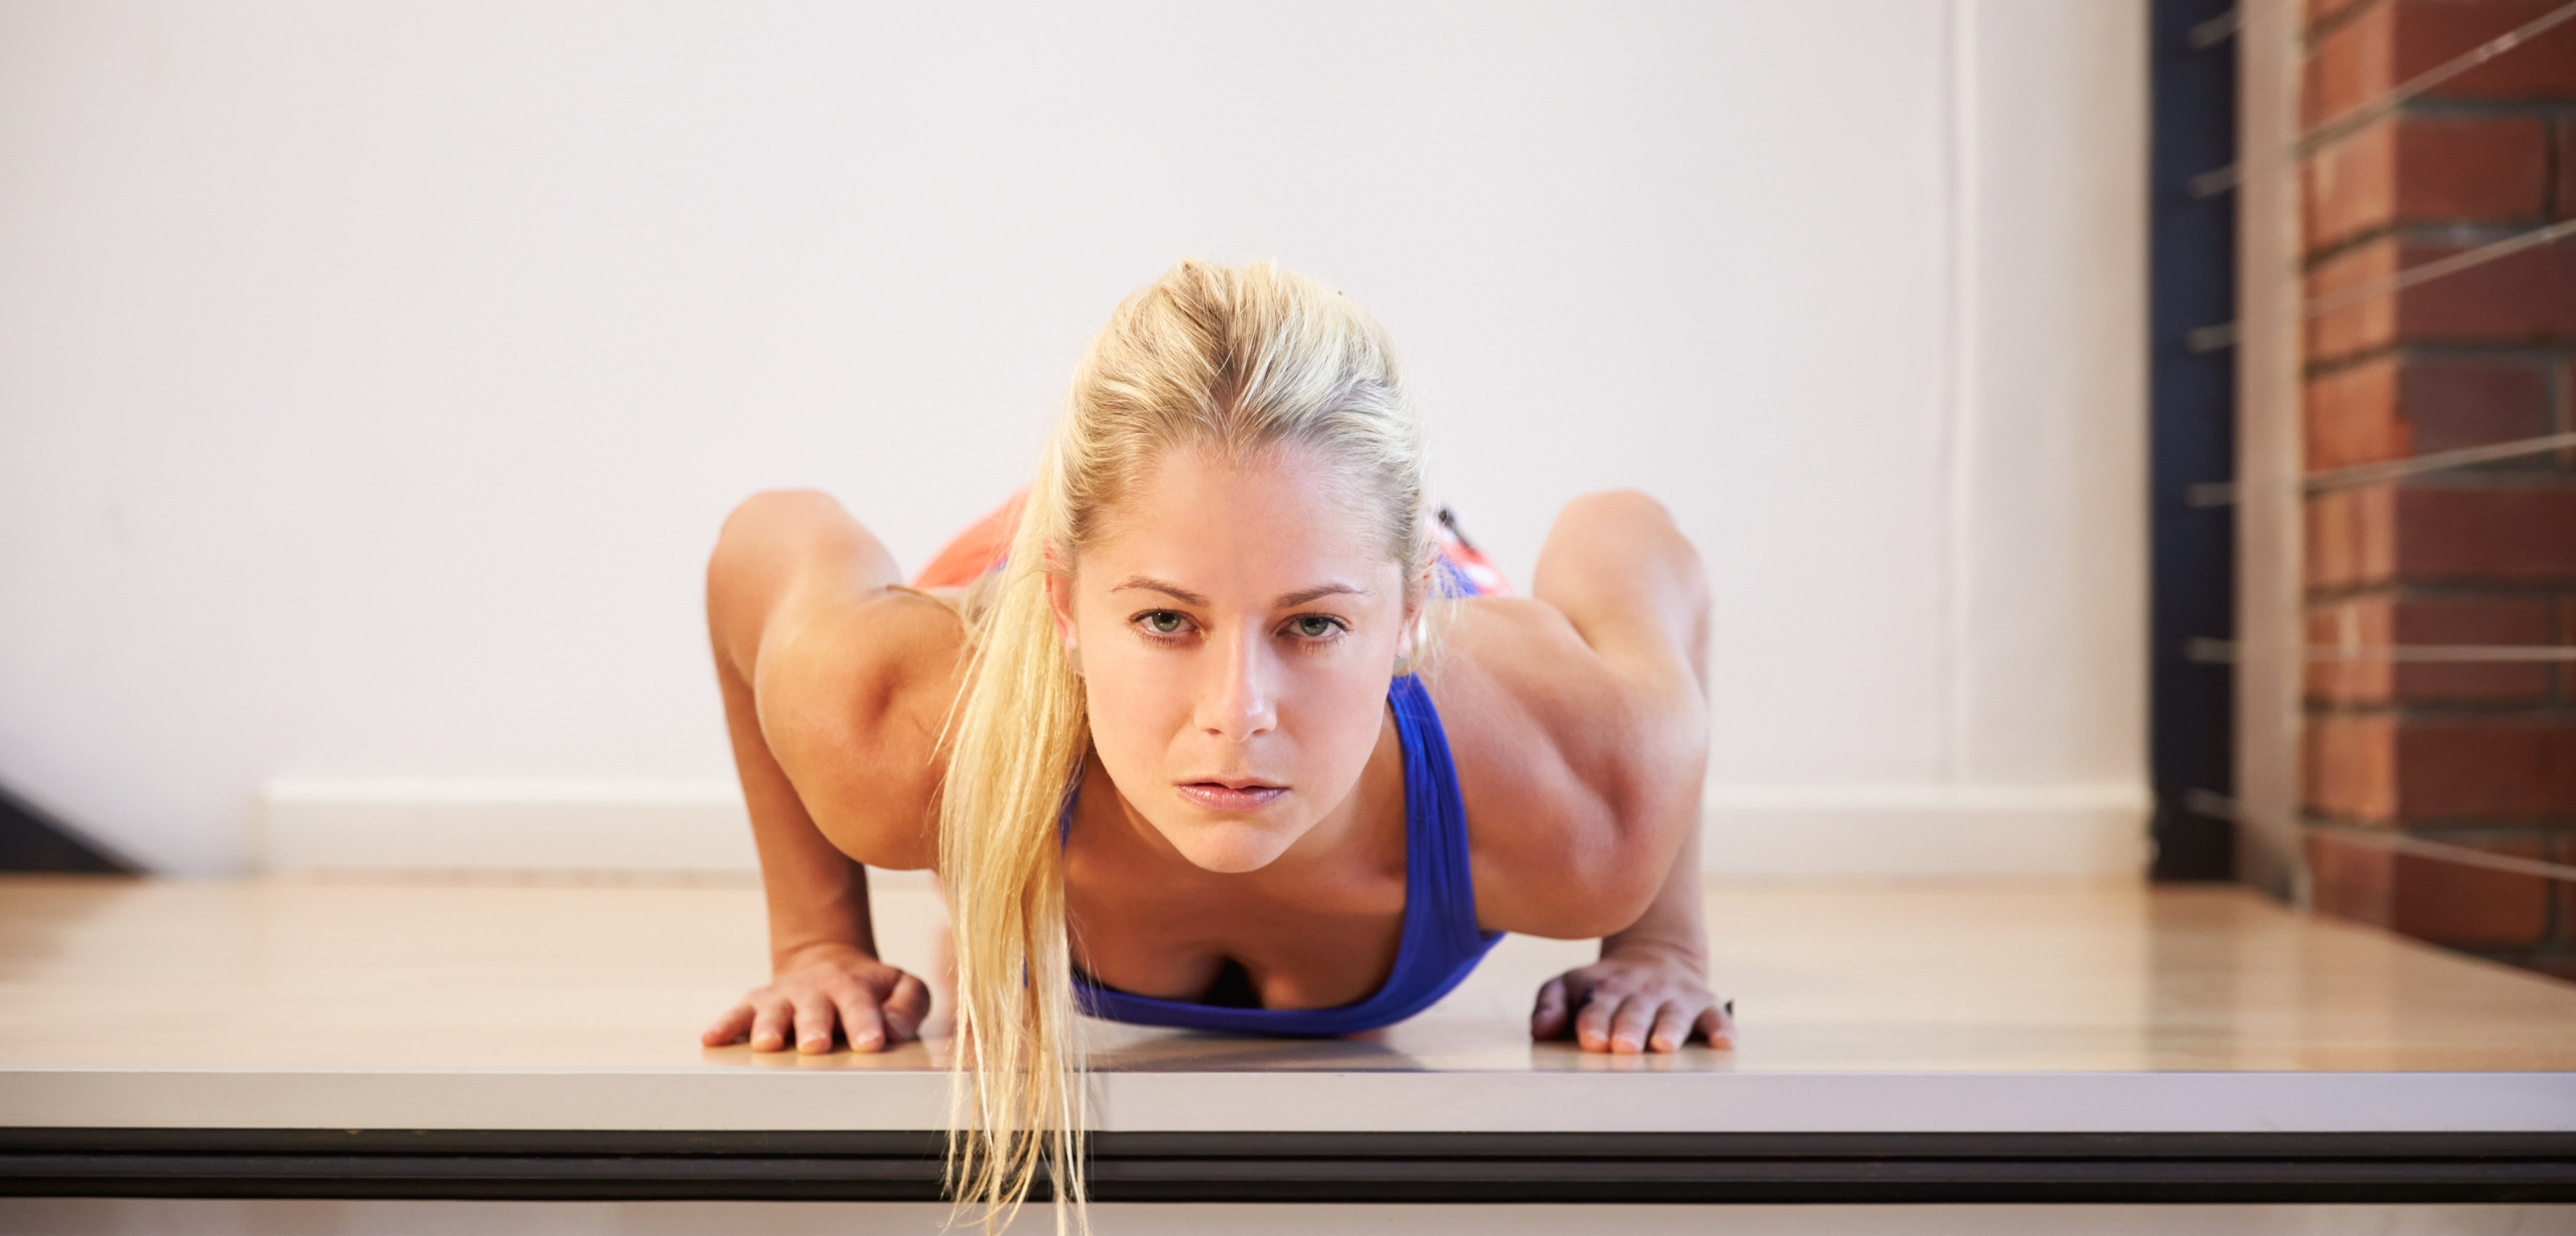 Woman In Gym Doing Press-Ups On Step Labeled Strength